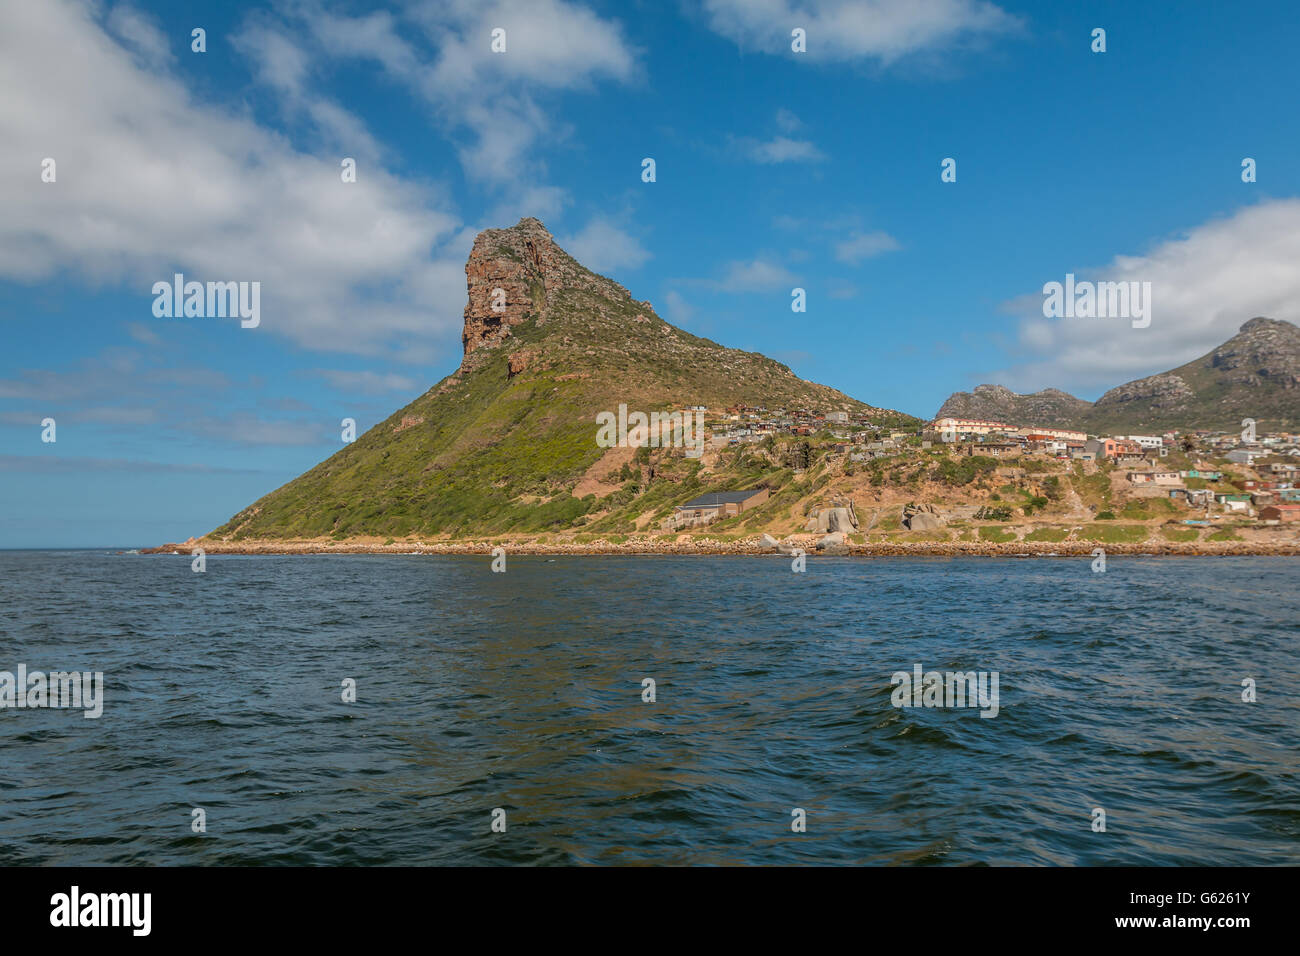 The Sentinel rock in Cape Town South Africa - Stock Image